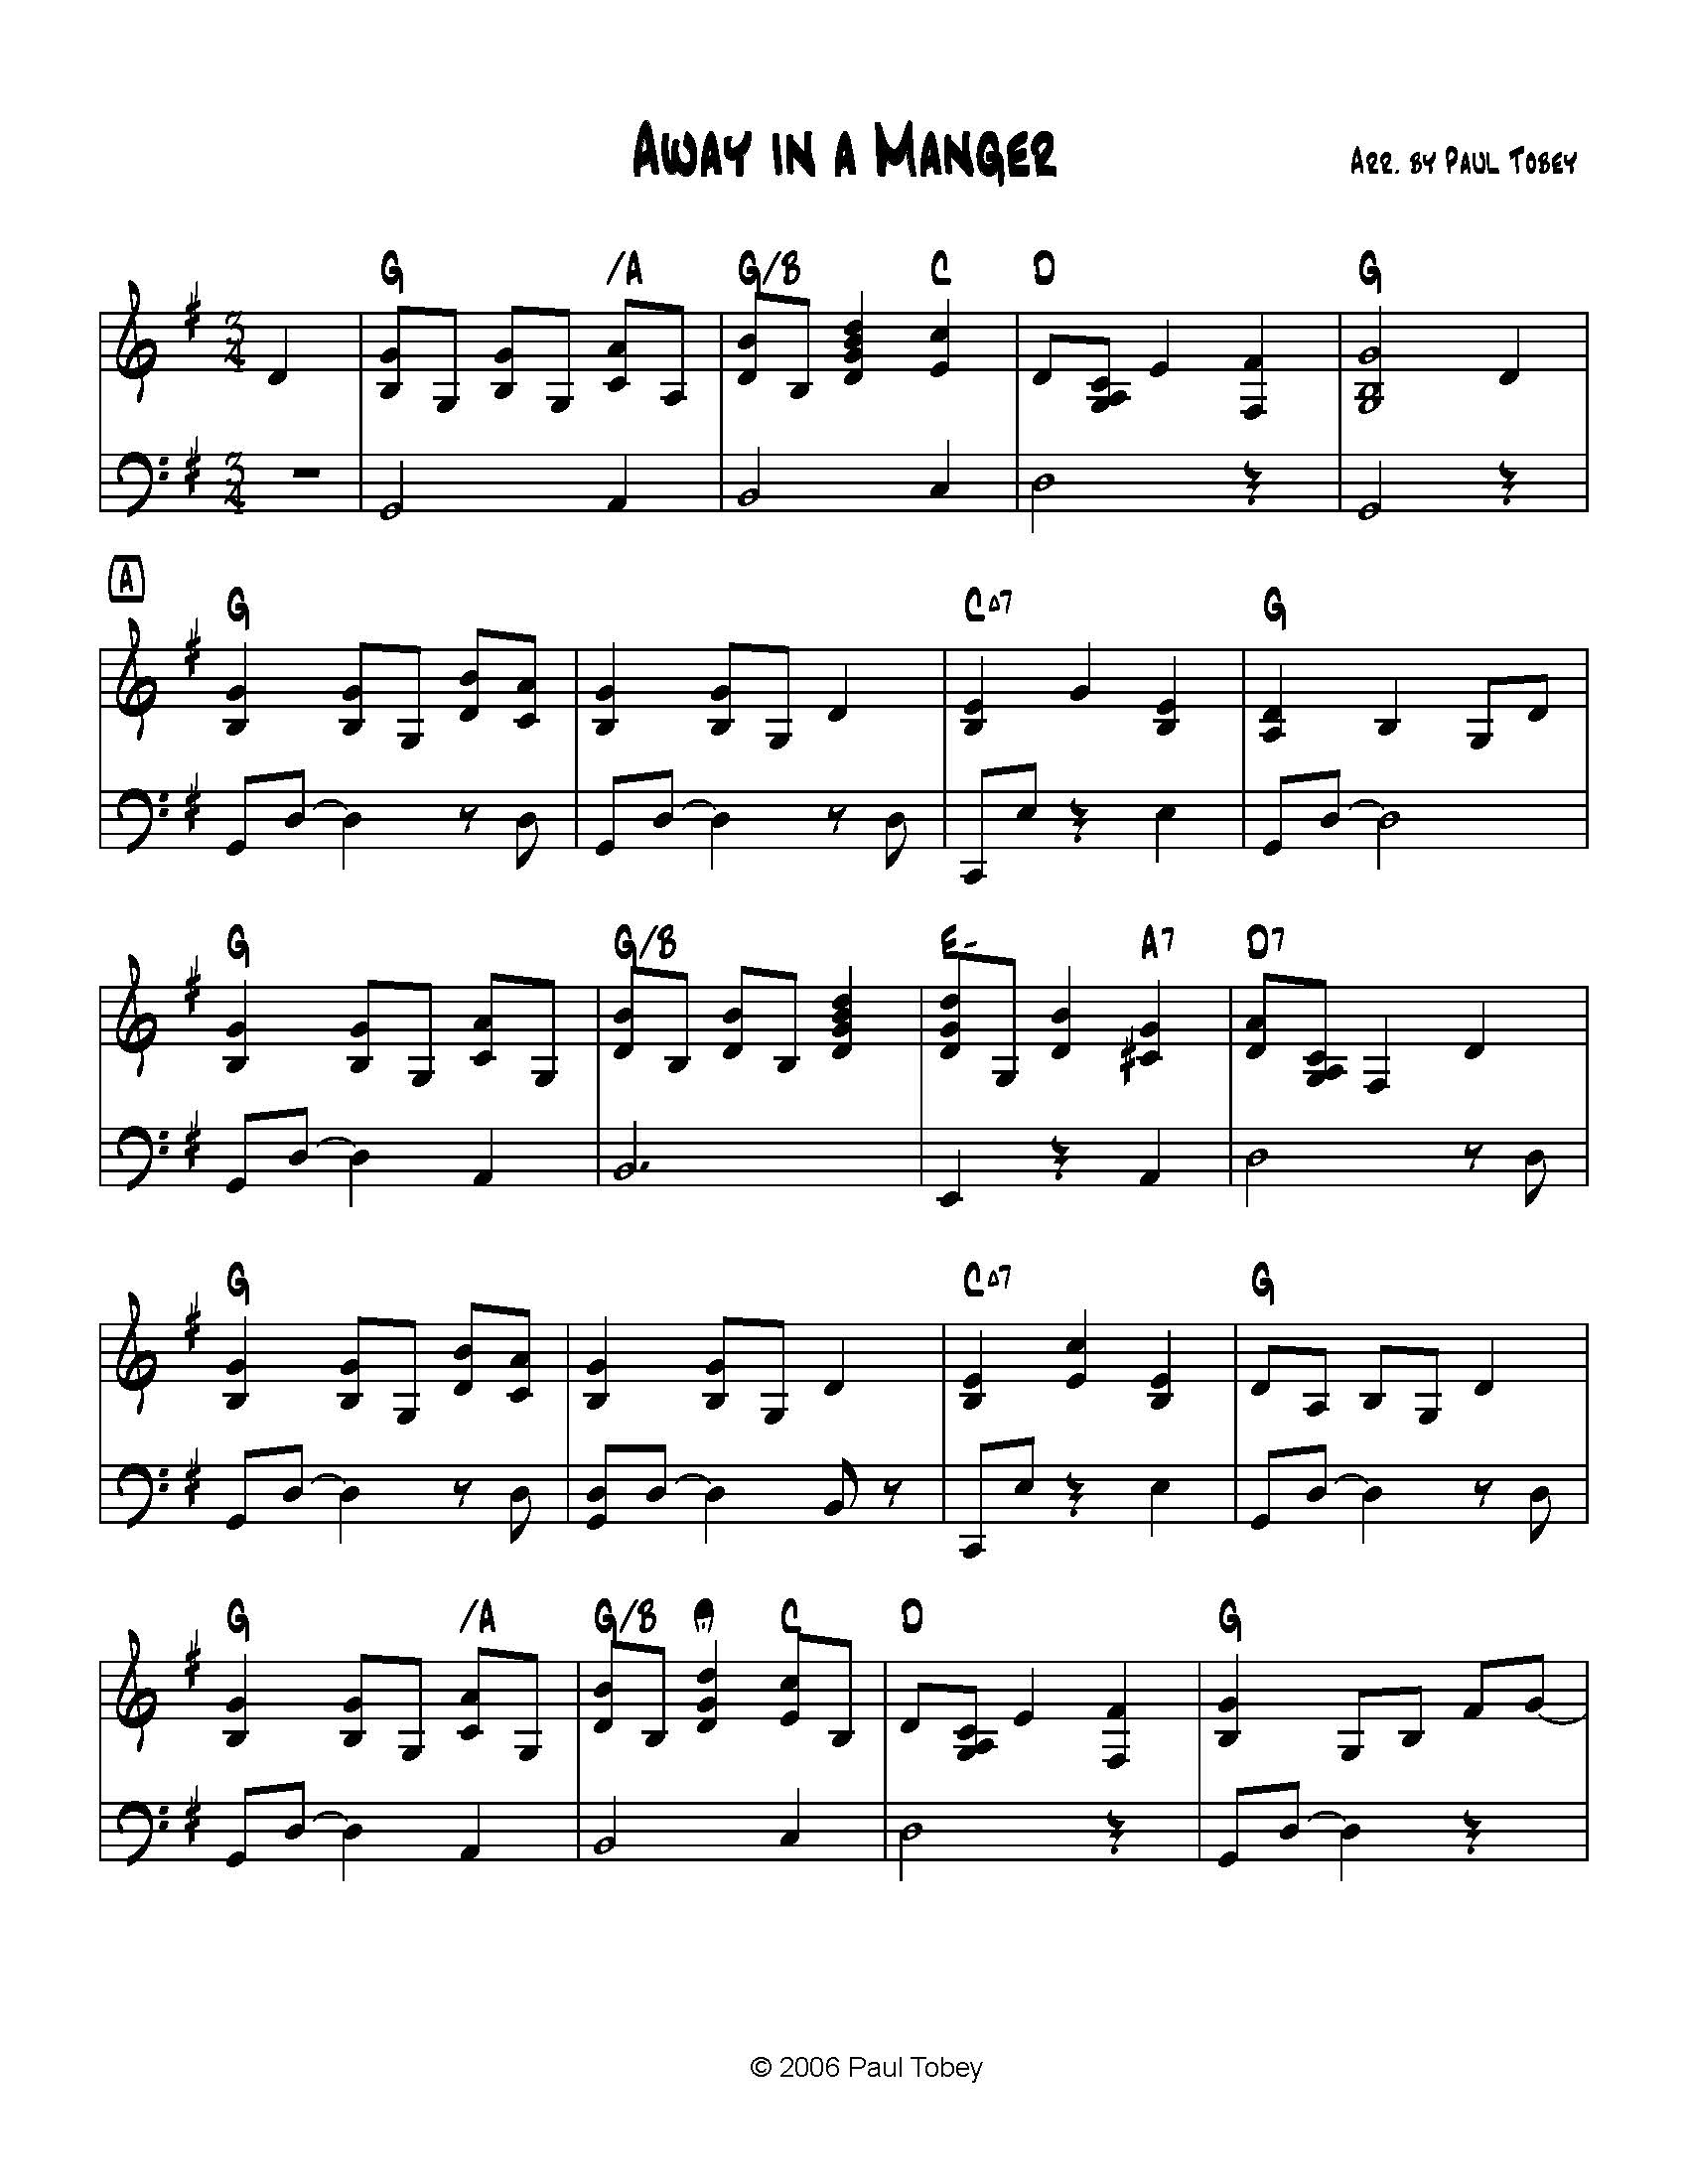 Away in a manger sheet music pdf paul tobey for Away in a manger coloring pages